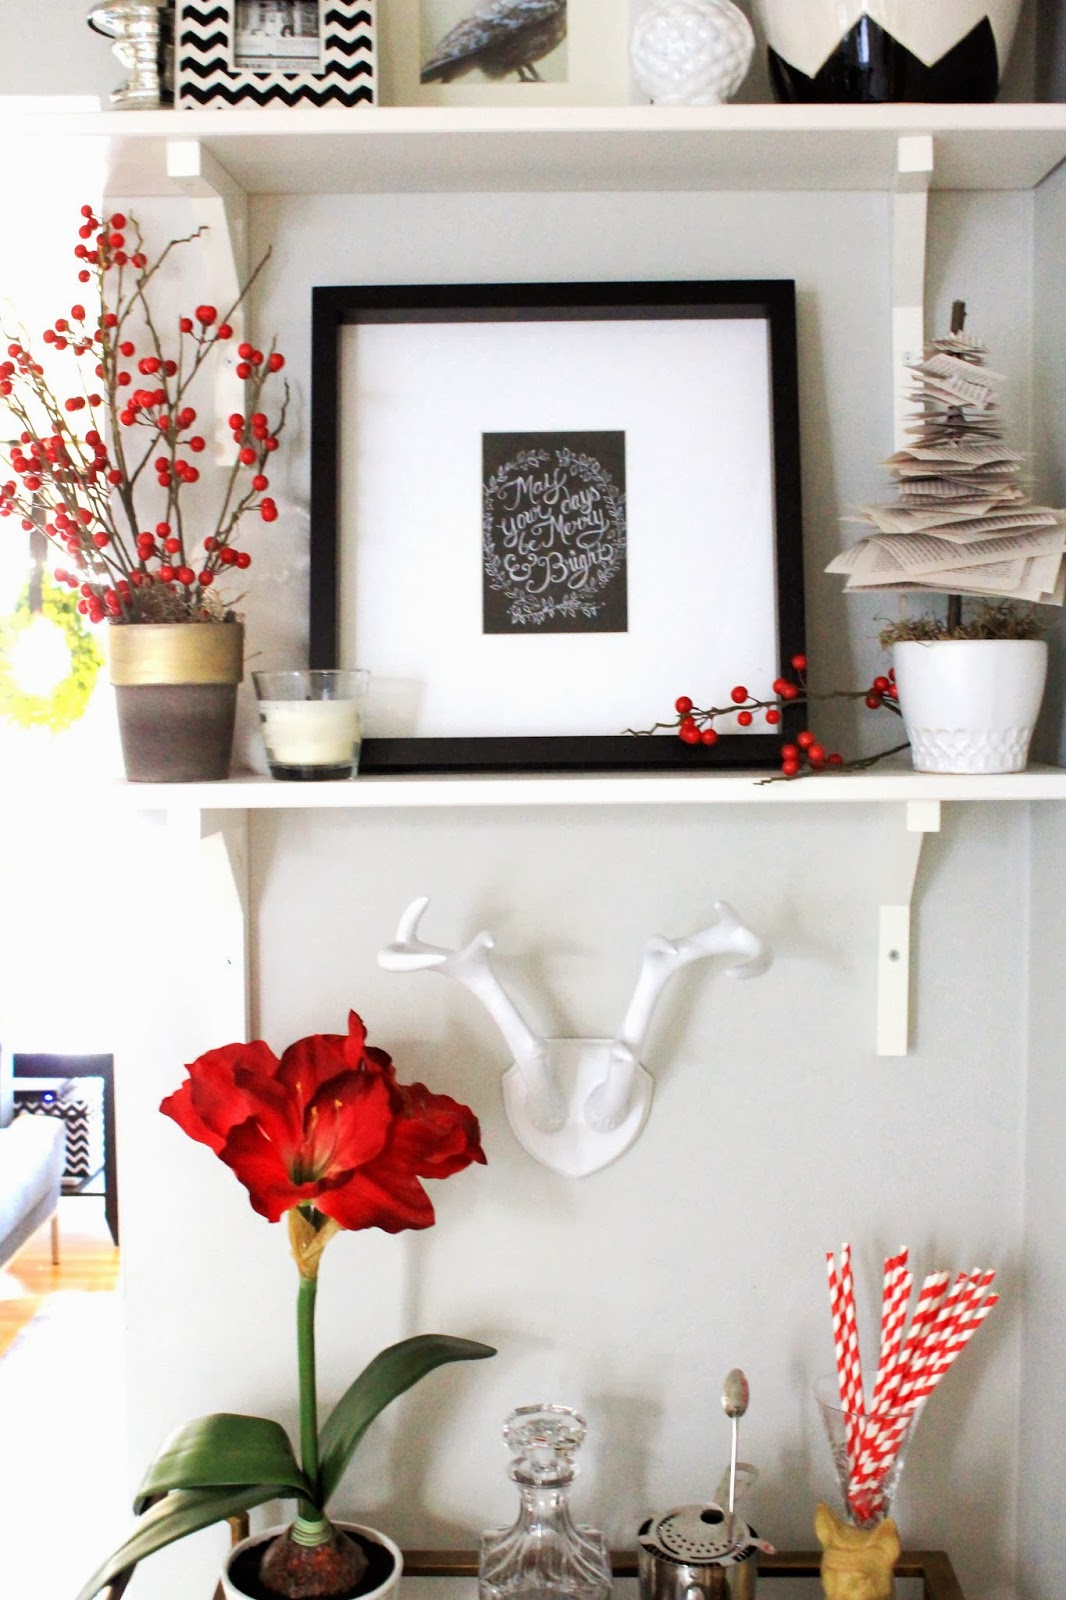 Cup Half Full: Holiday Shelf Decor